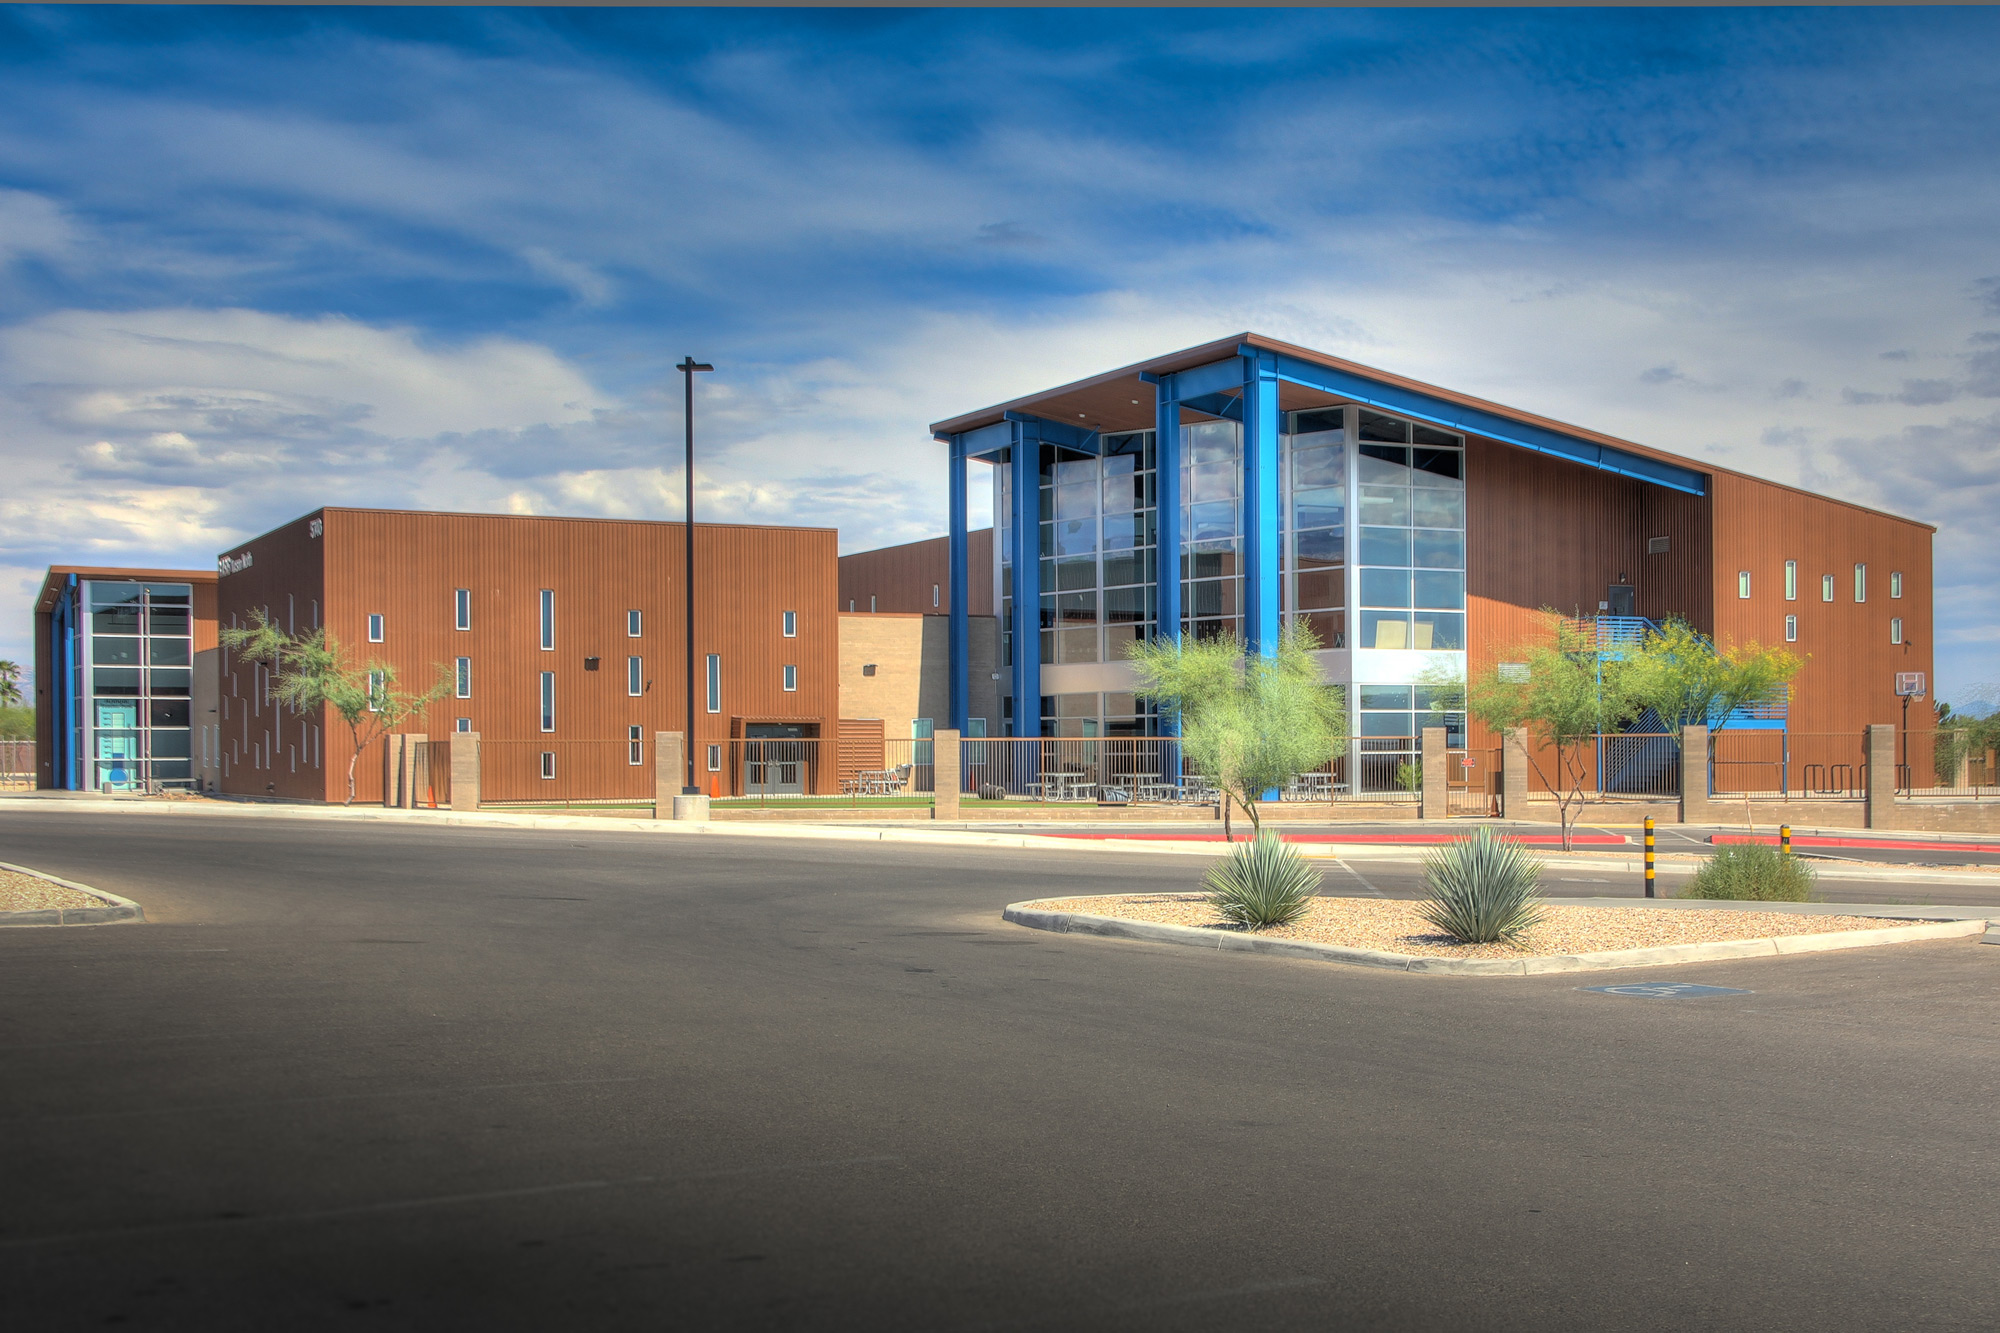 COMMERCIAL REAL ESTATE PHOTOGRAPHY – BASIS TUCSON